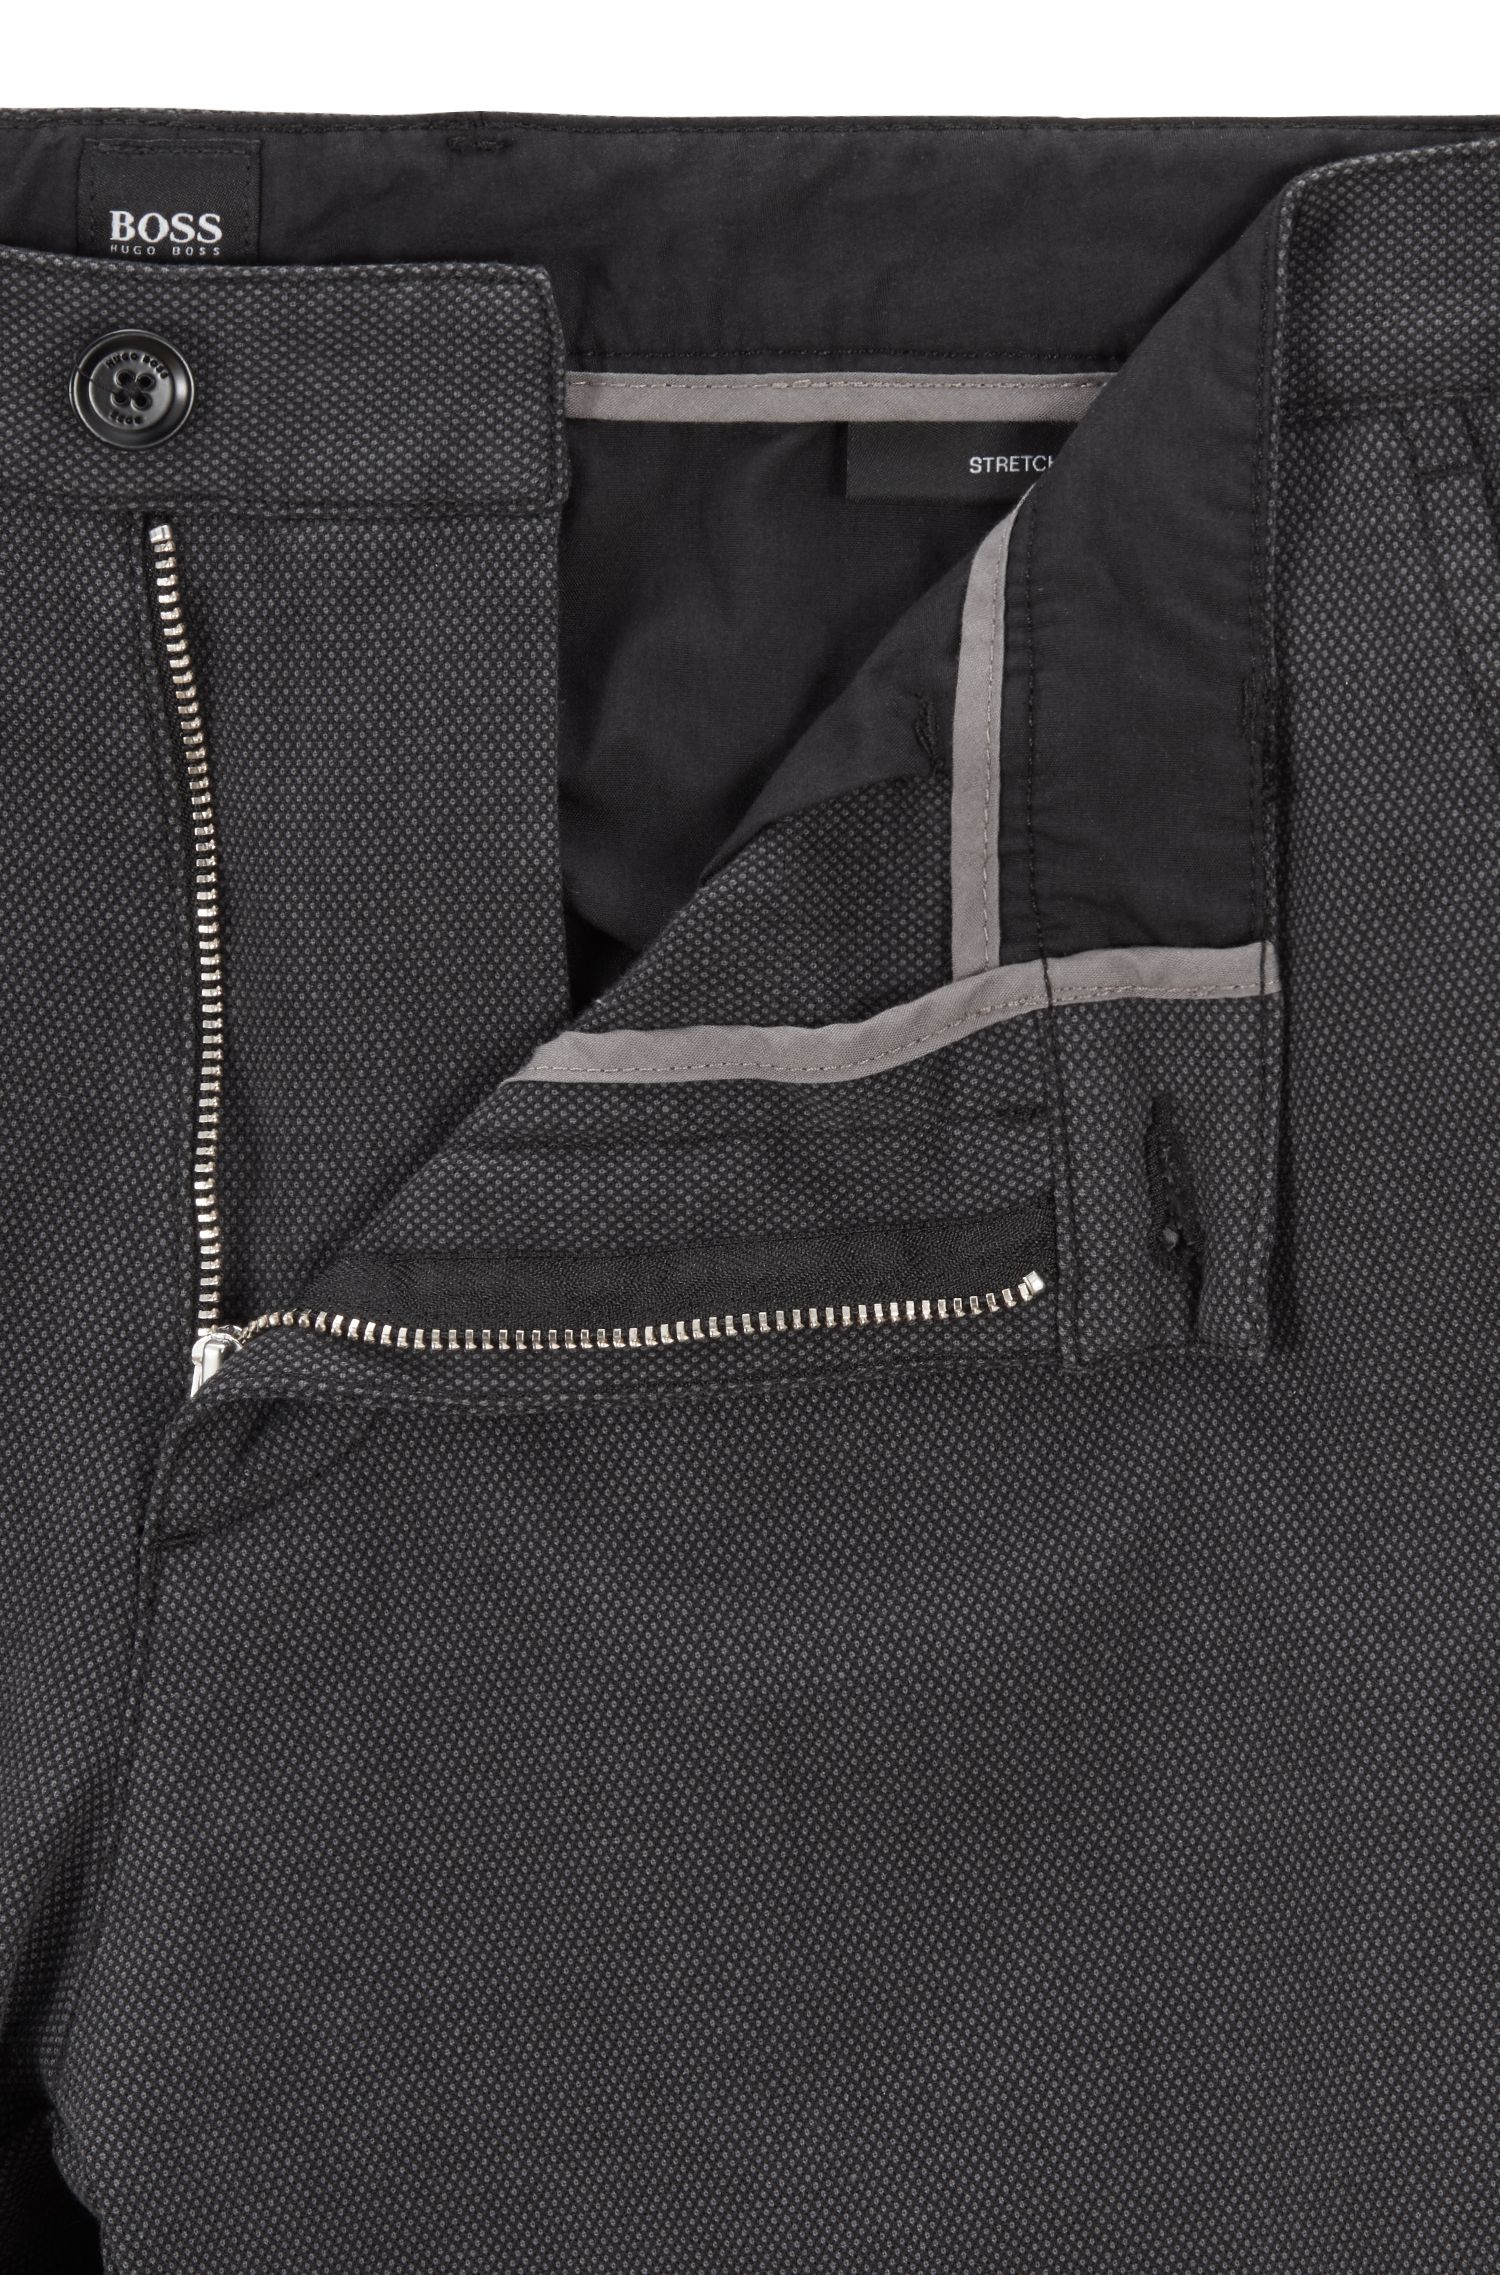 Regular-Fit Chino aus Stretch-Baumwolle mit dezenter Struktur, Schwarz